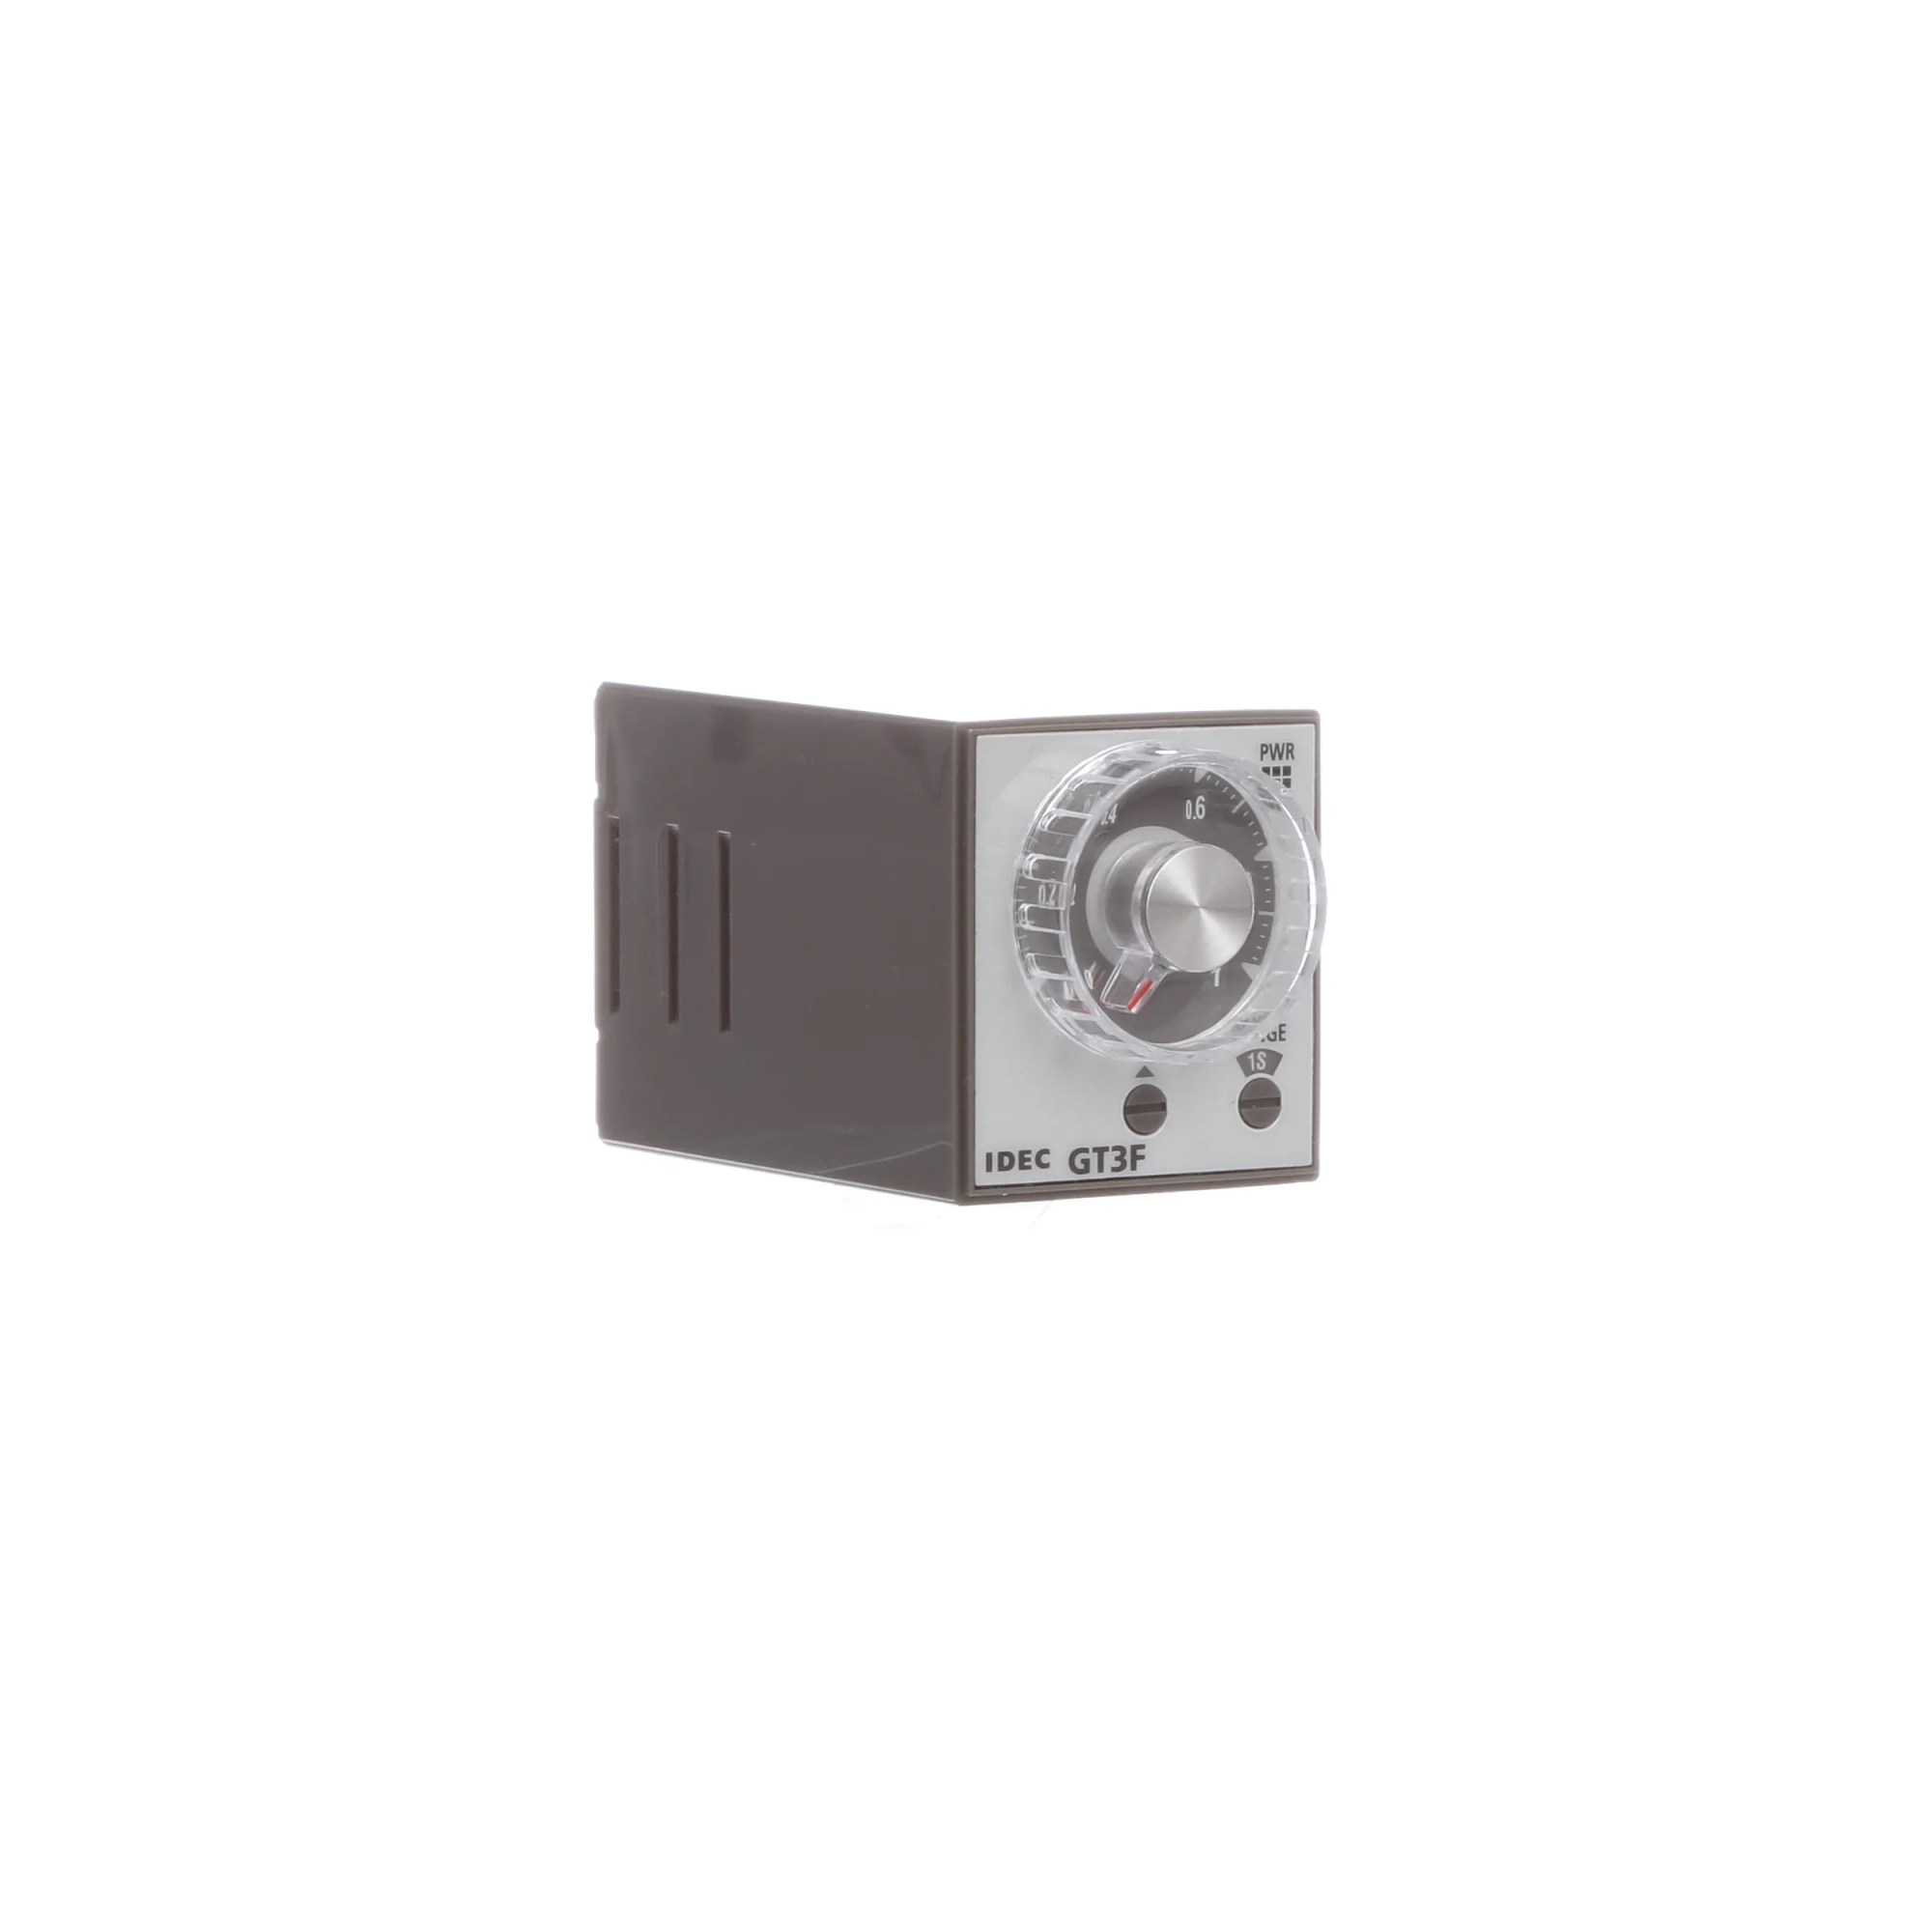 hight resolution of idec corporation gt3f 2af20 relay e mech timing off delay dpdt cur rtg 3a ctrl v 100 240ac socket mnt screw allied electronics automation